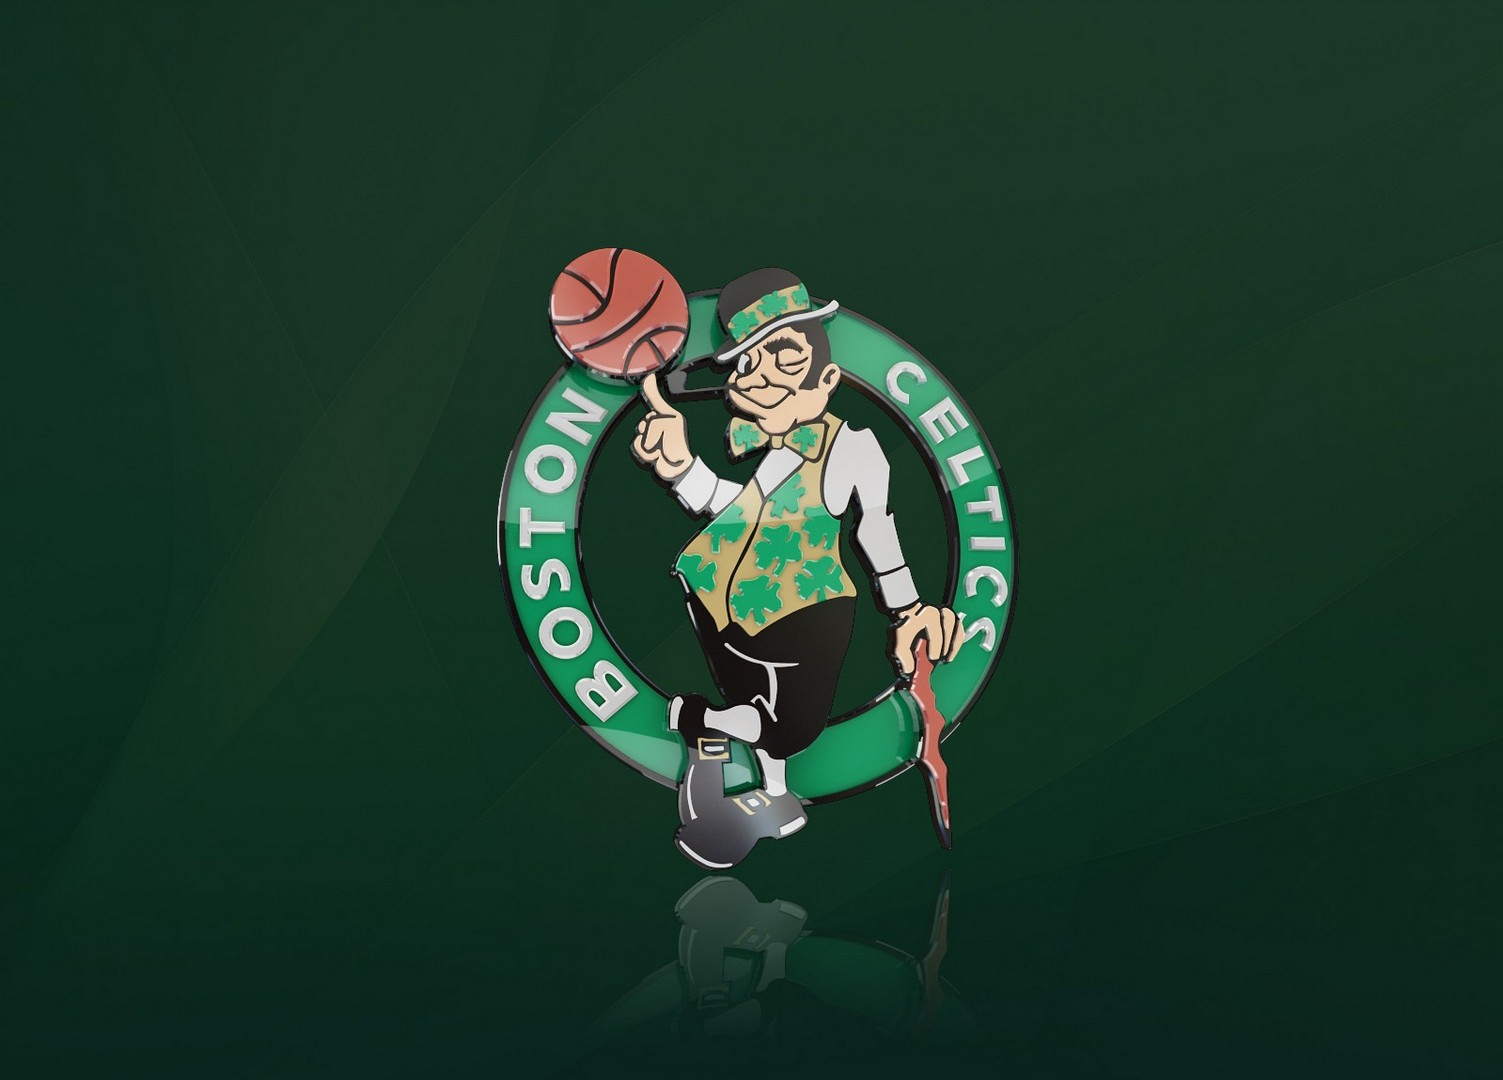 boston celtics logo on this nba background founded in 1946 the celtics ...